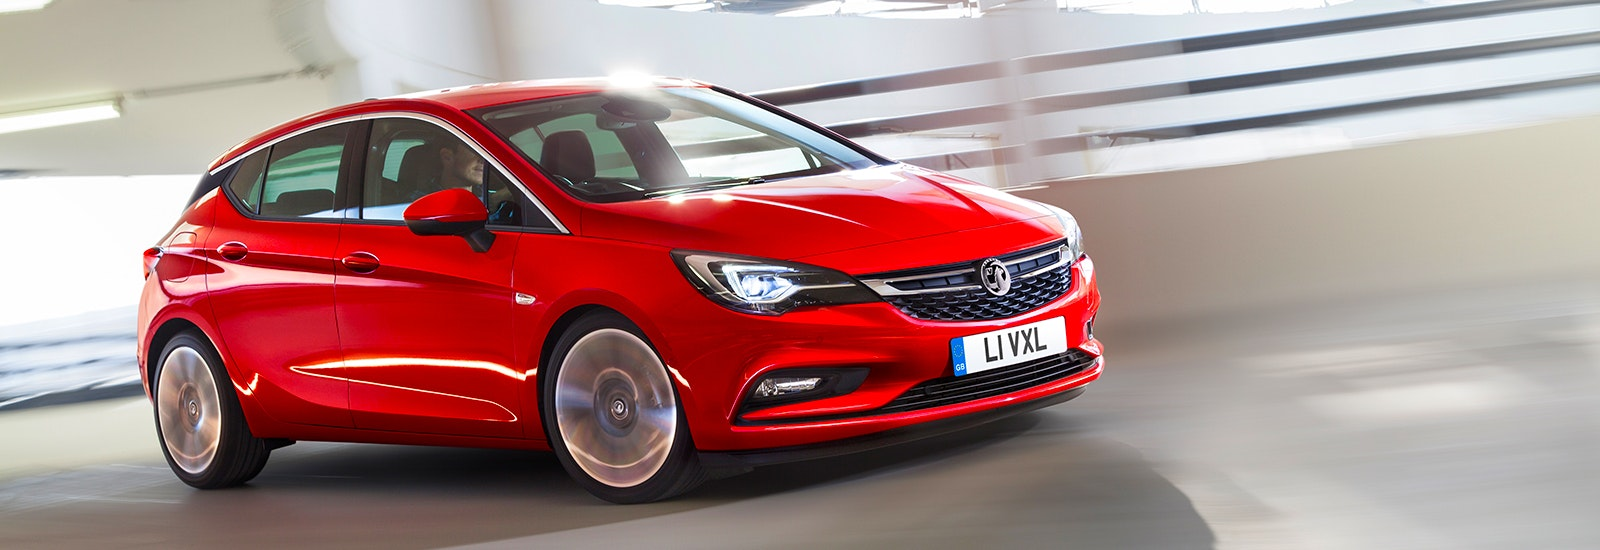 2017 Vauxhall Scrappage Scheme What Cars Qualify Carwow